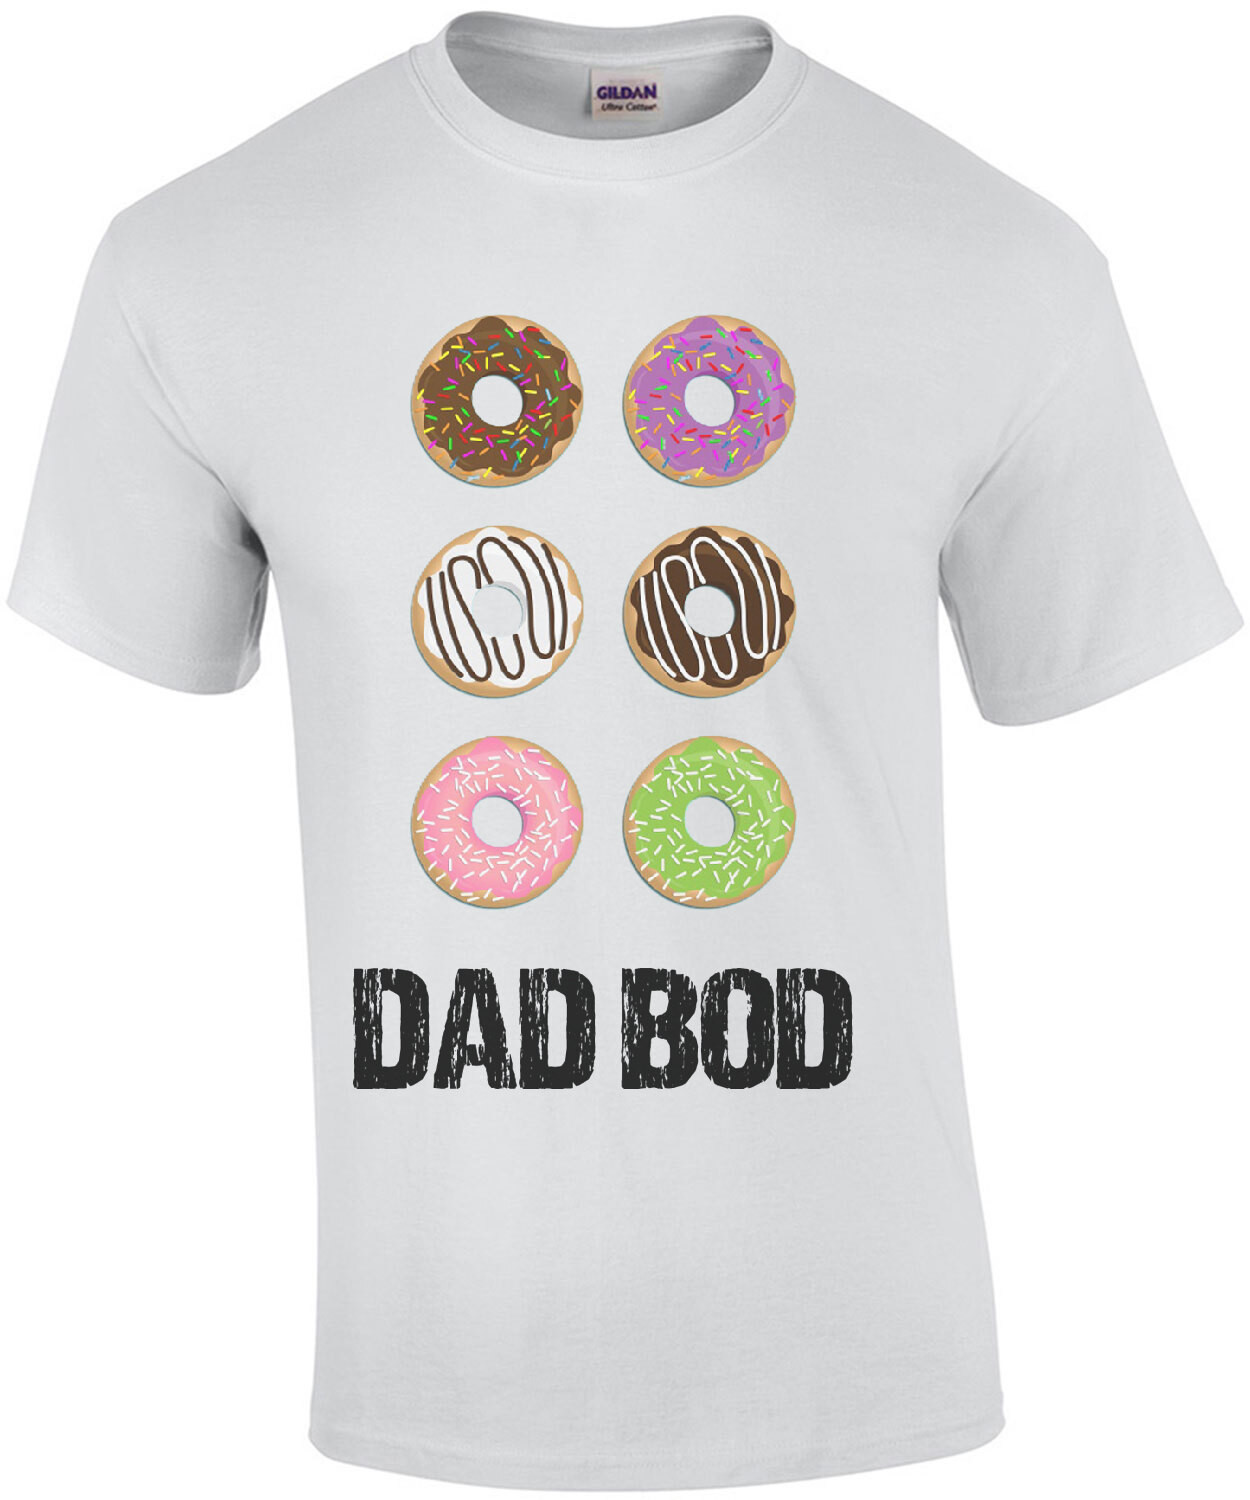 Donut Dad Bod - Funny donut dad t-shirt